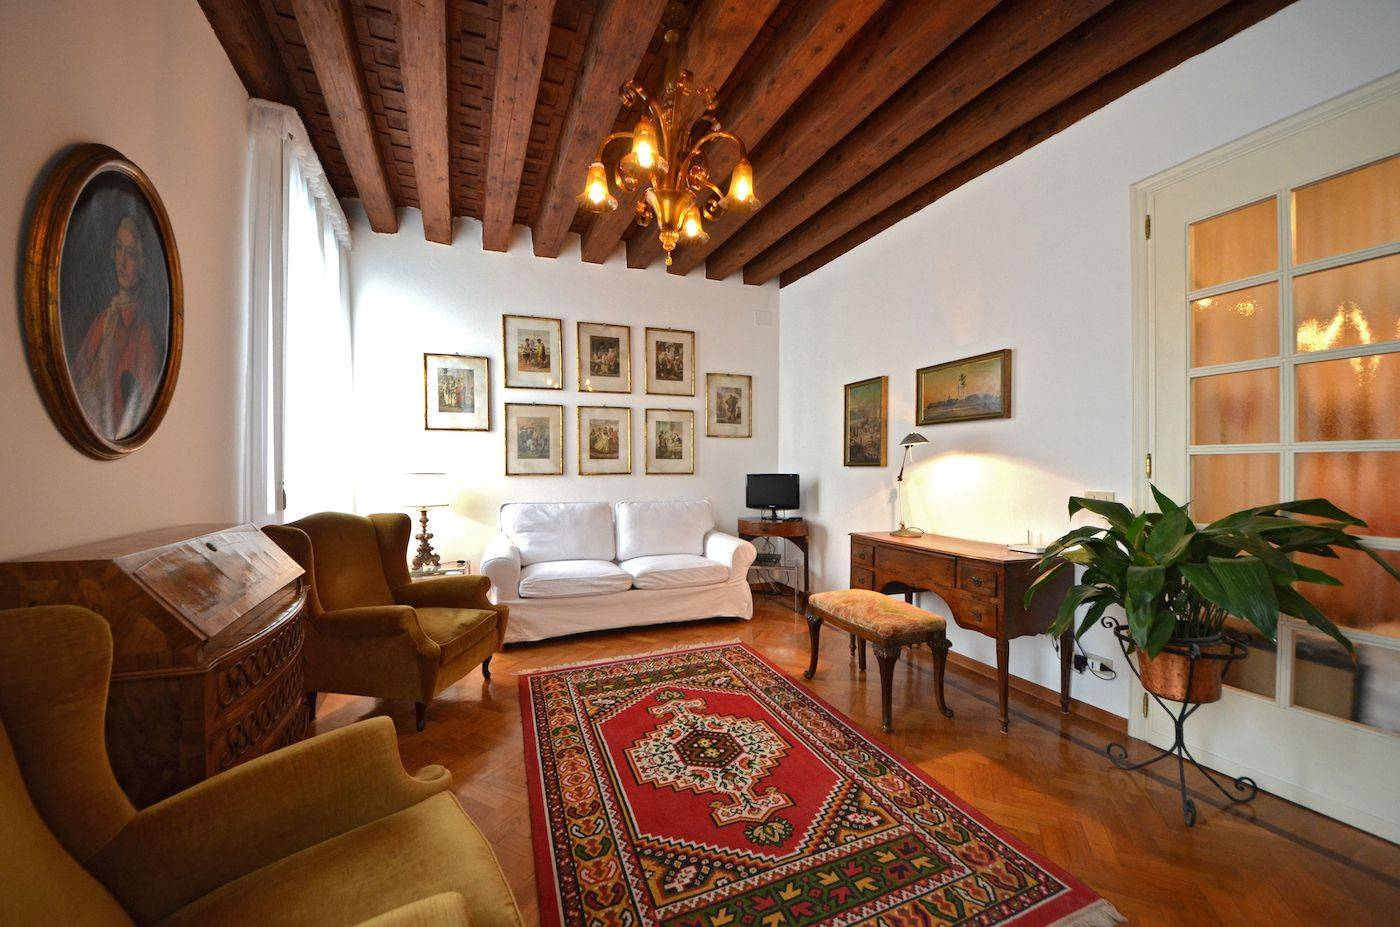 the cosy venetian style living room with canal view and pull-out bed